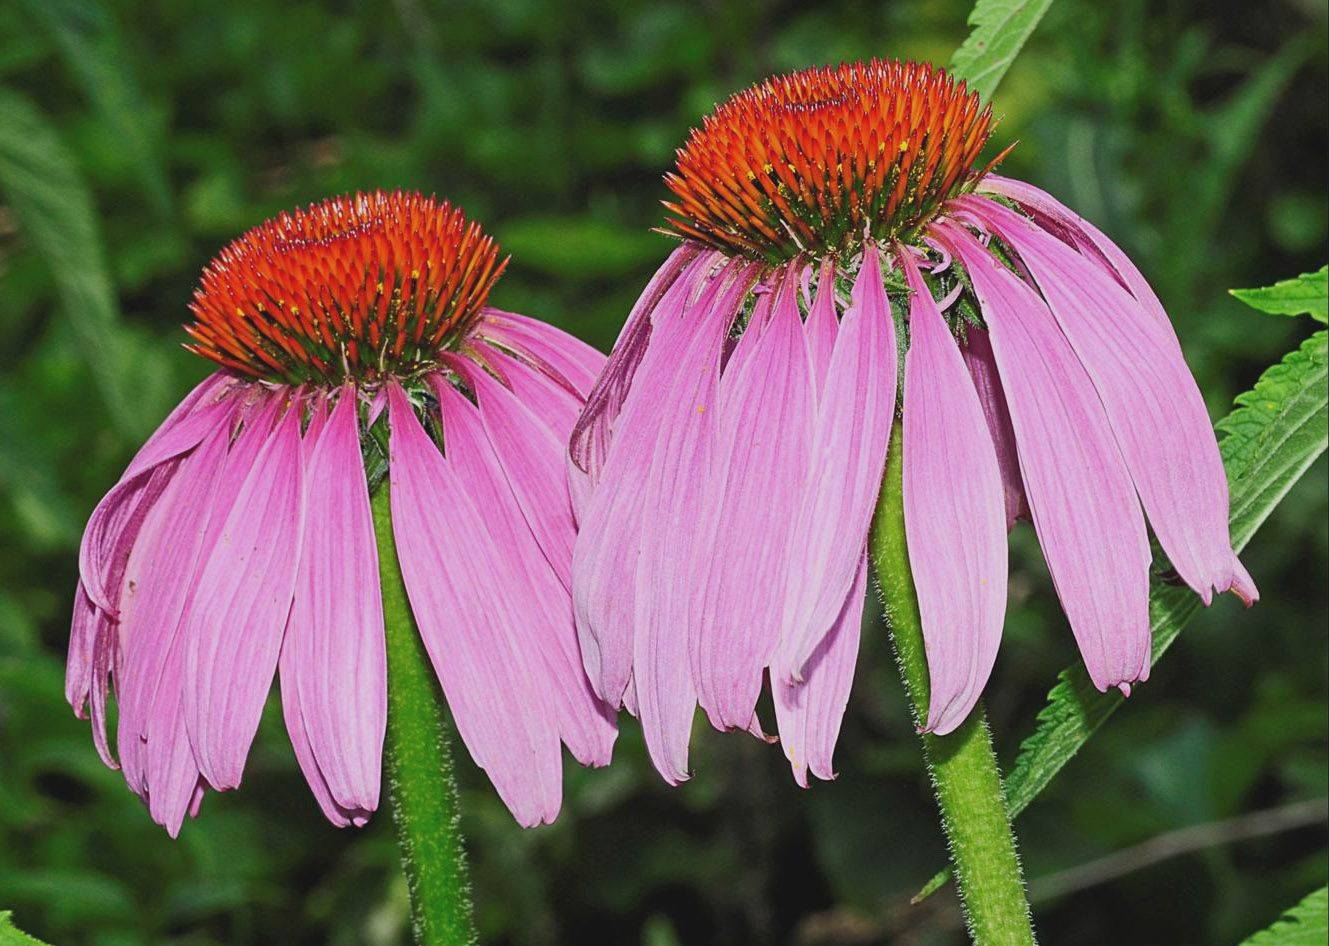 Purple coneflowers are among the native plant species that can attract songbirds and butterflies.